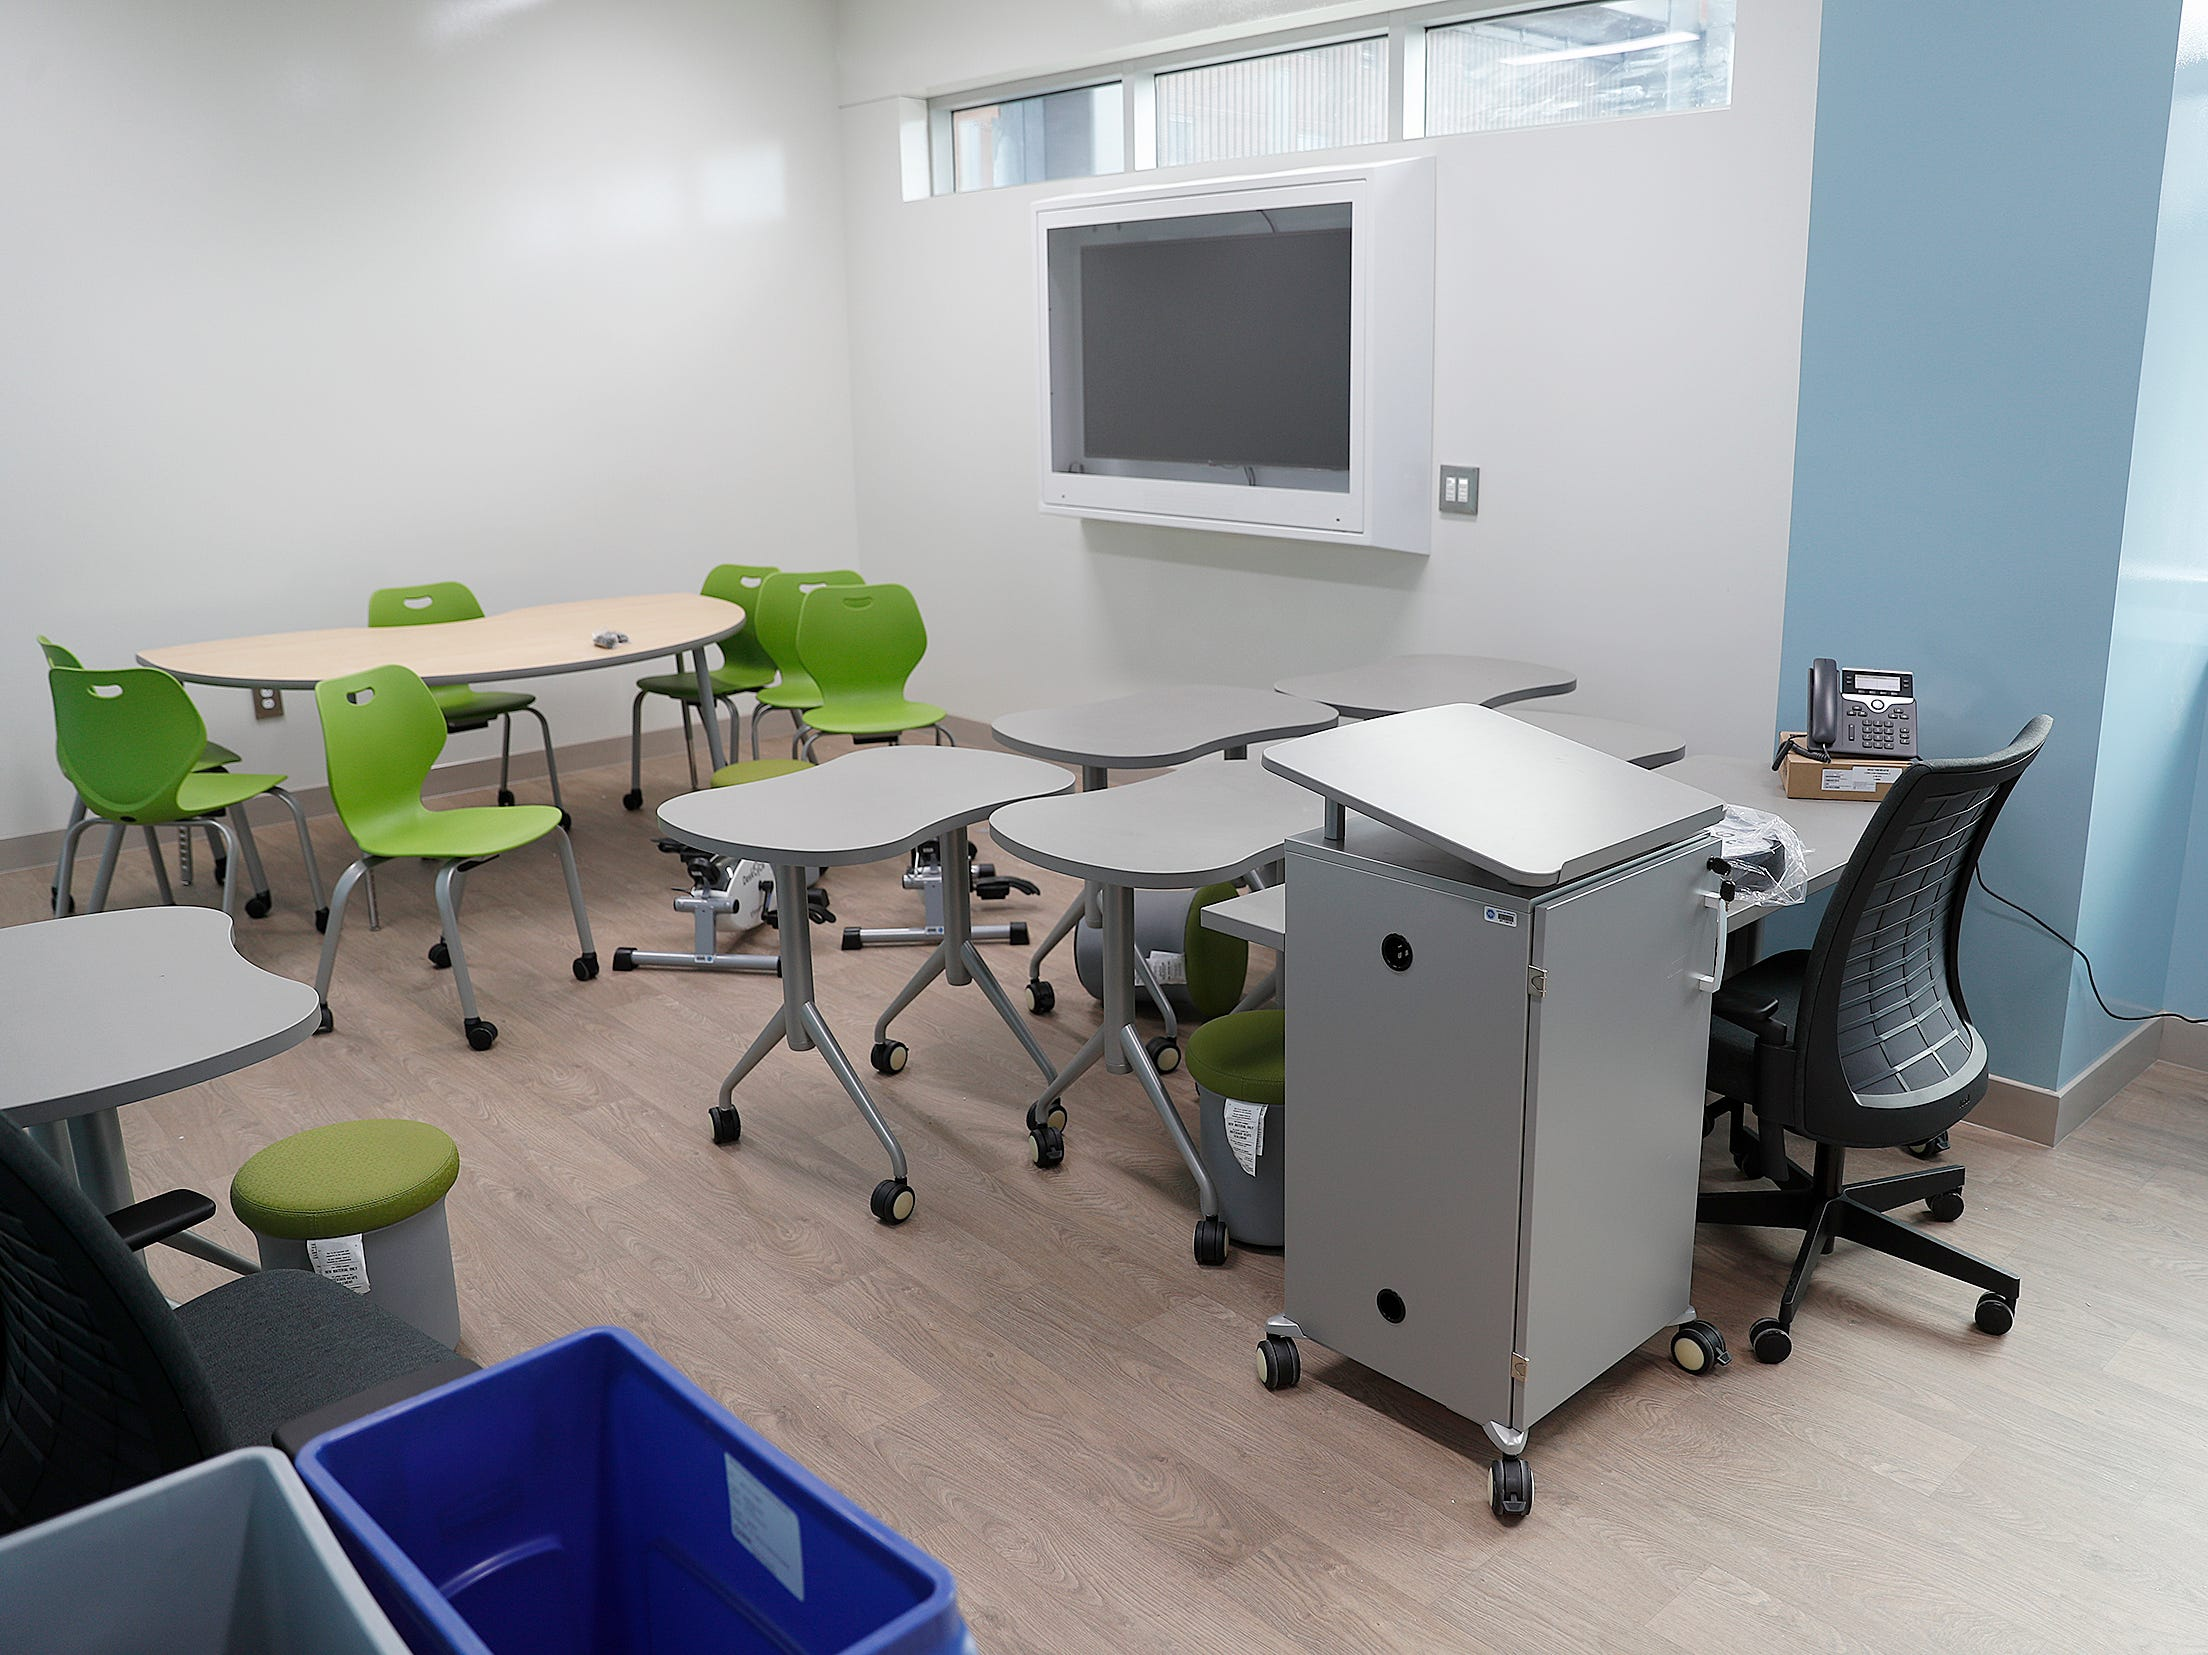 One of the many classrooms in the new NeuroDiagnostic Institute, at 5435 E 16th St., will replace LaRue Carter as the center for mental health care on Wednesday, March 13, 2019.